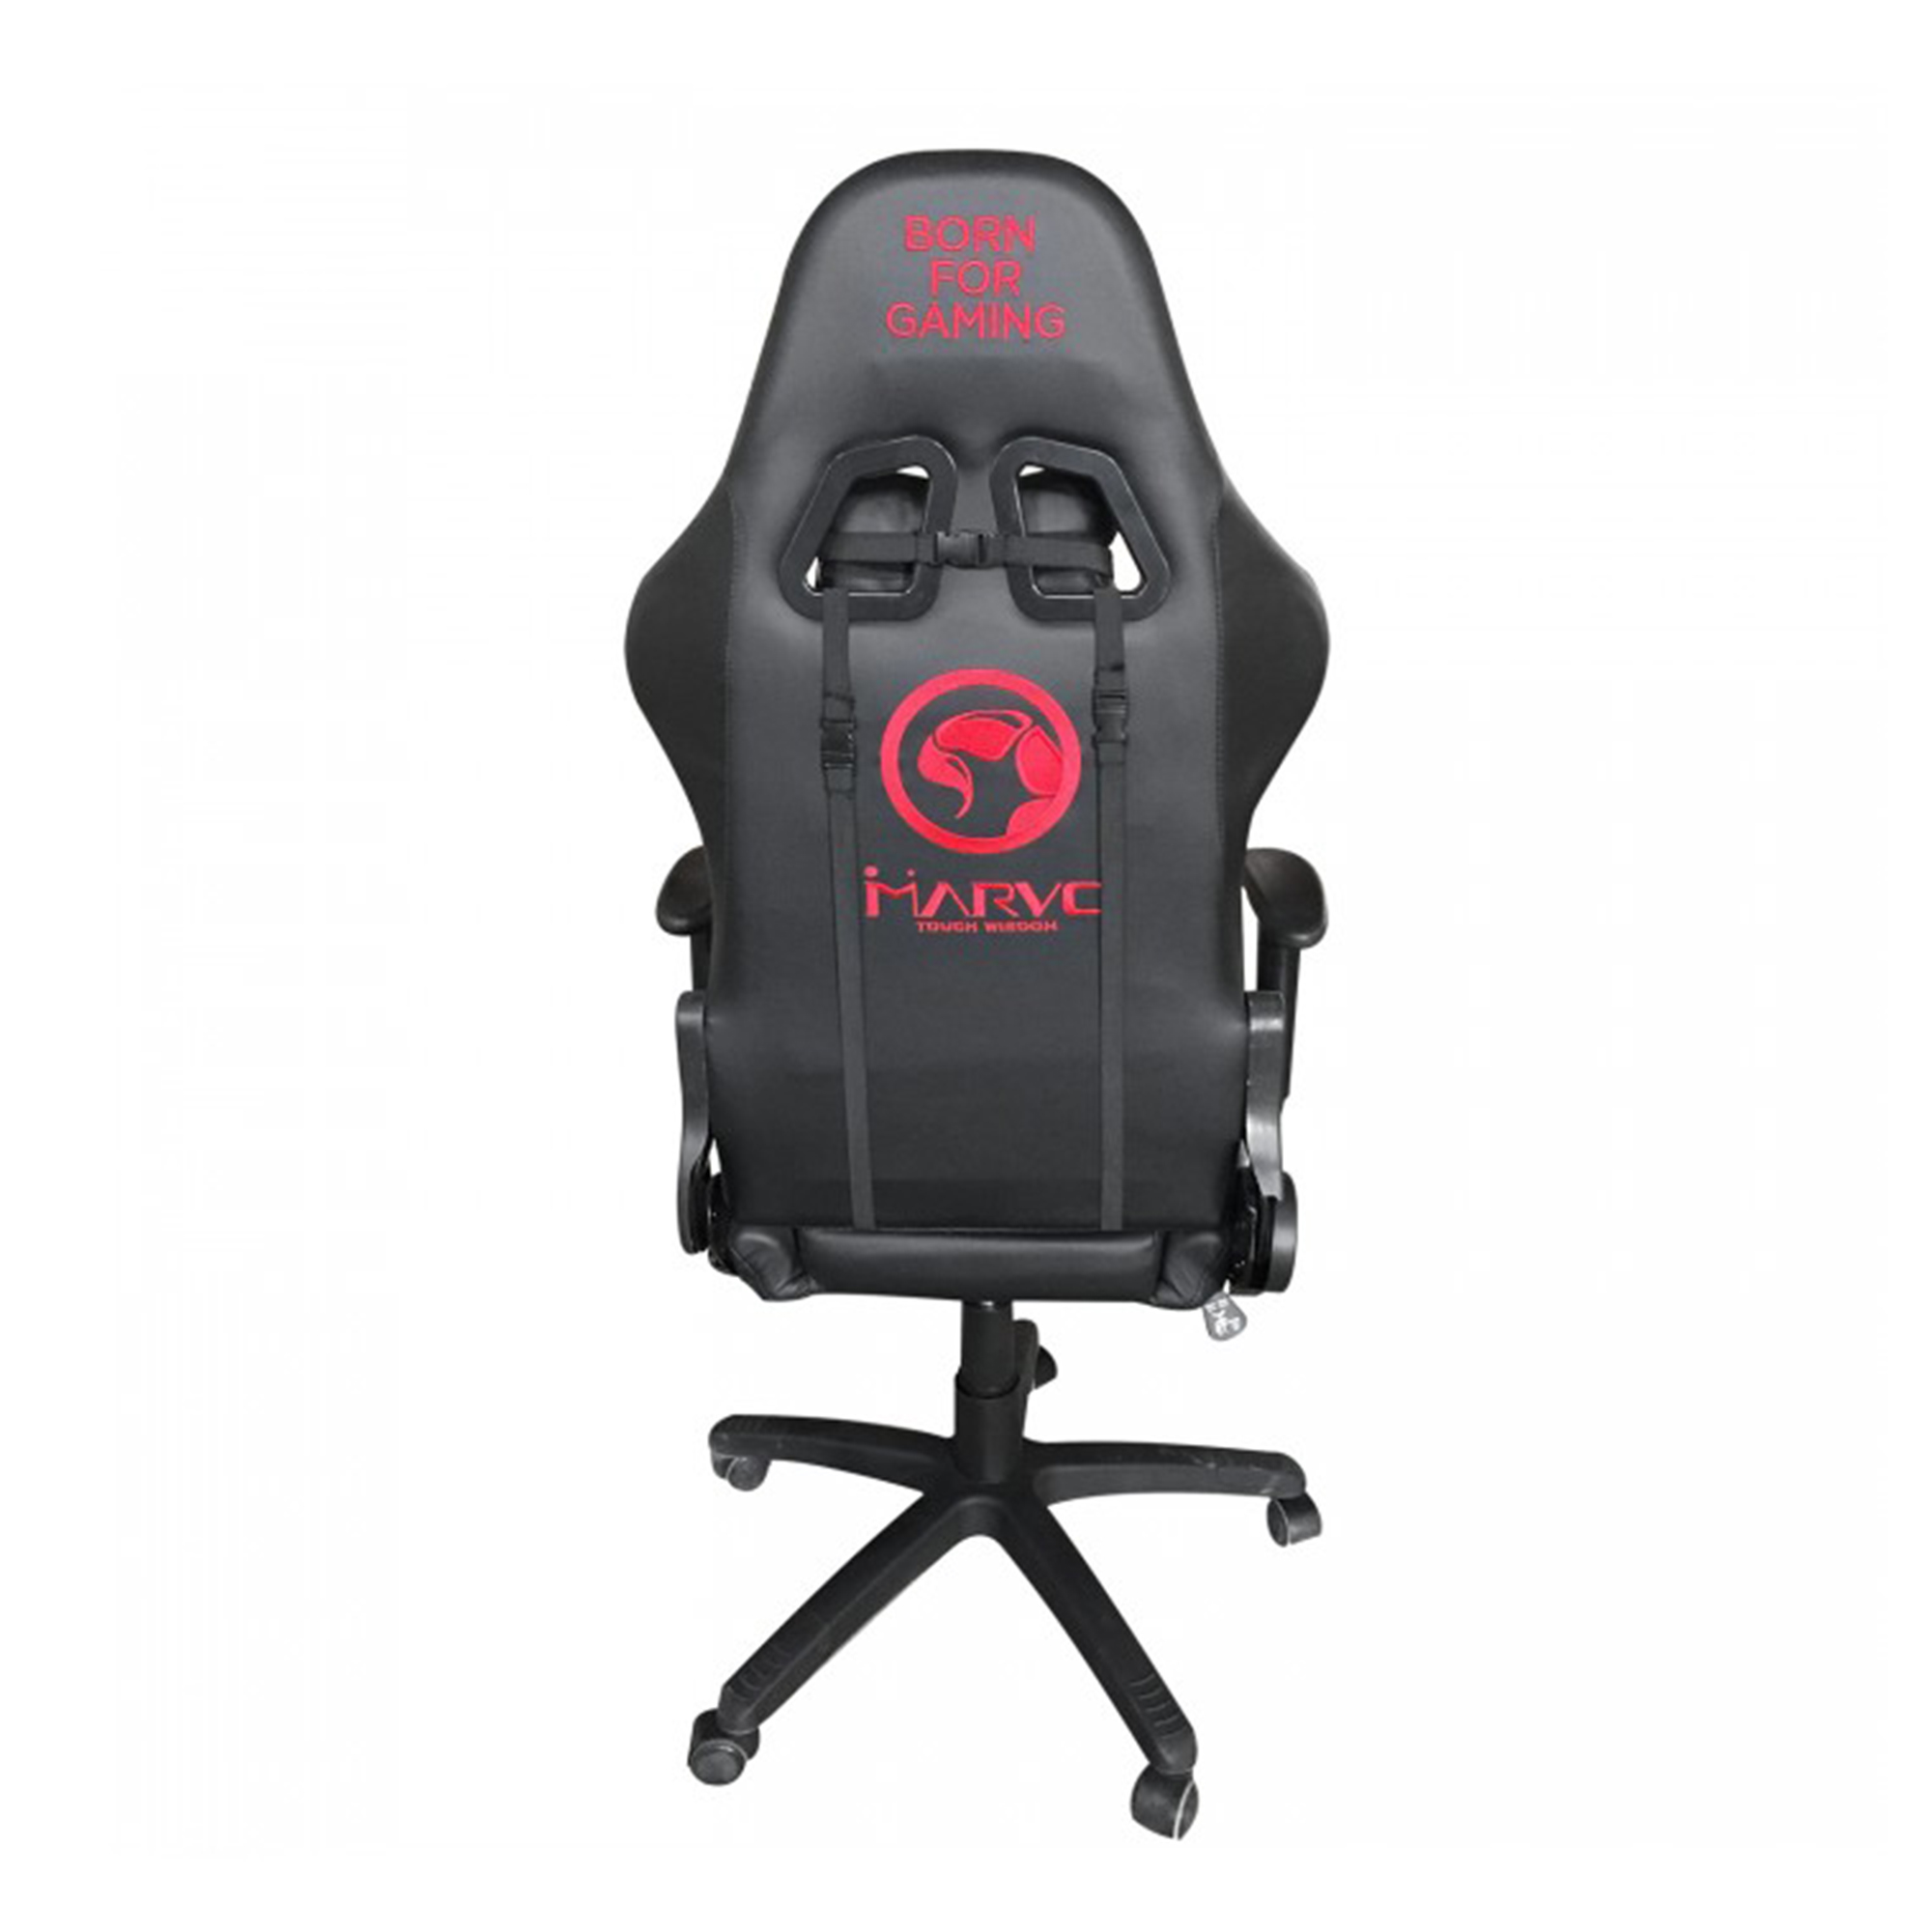 Enjoyable Marvo Scorpion Ch 106 Adjustable Gaming Chair Black Black Squirreltailoven Fun Painted Chair Ideas Images Squirreltailovenorg